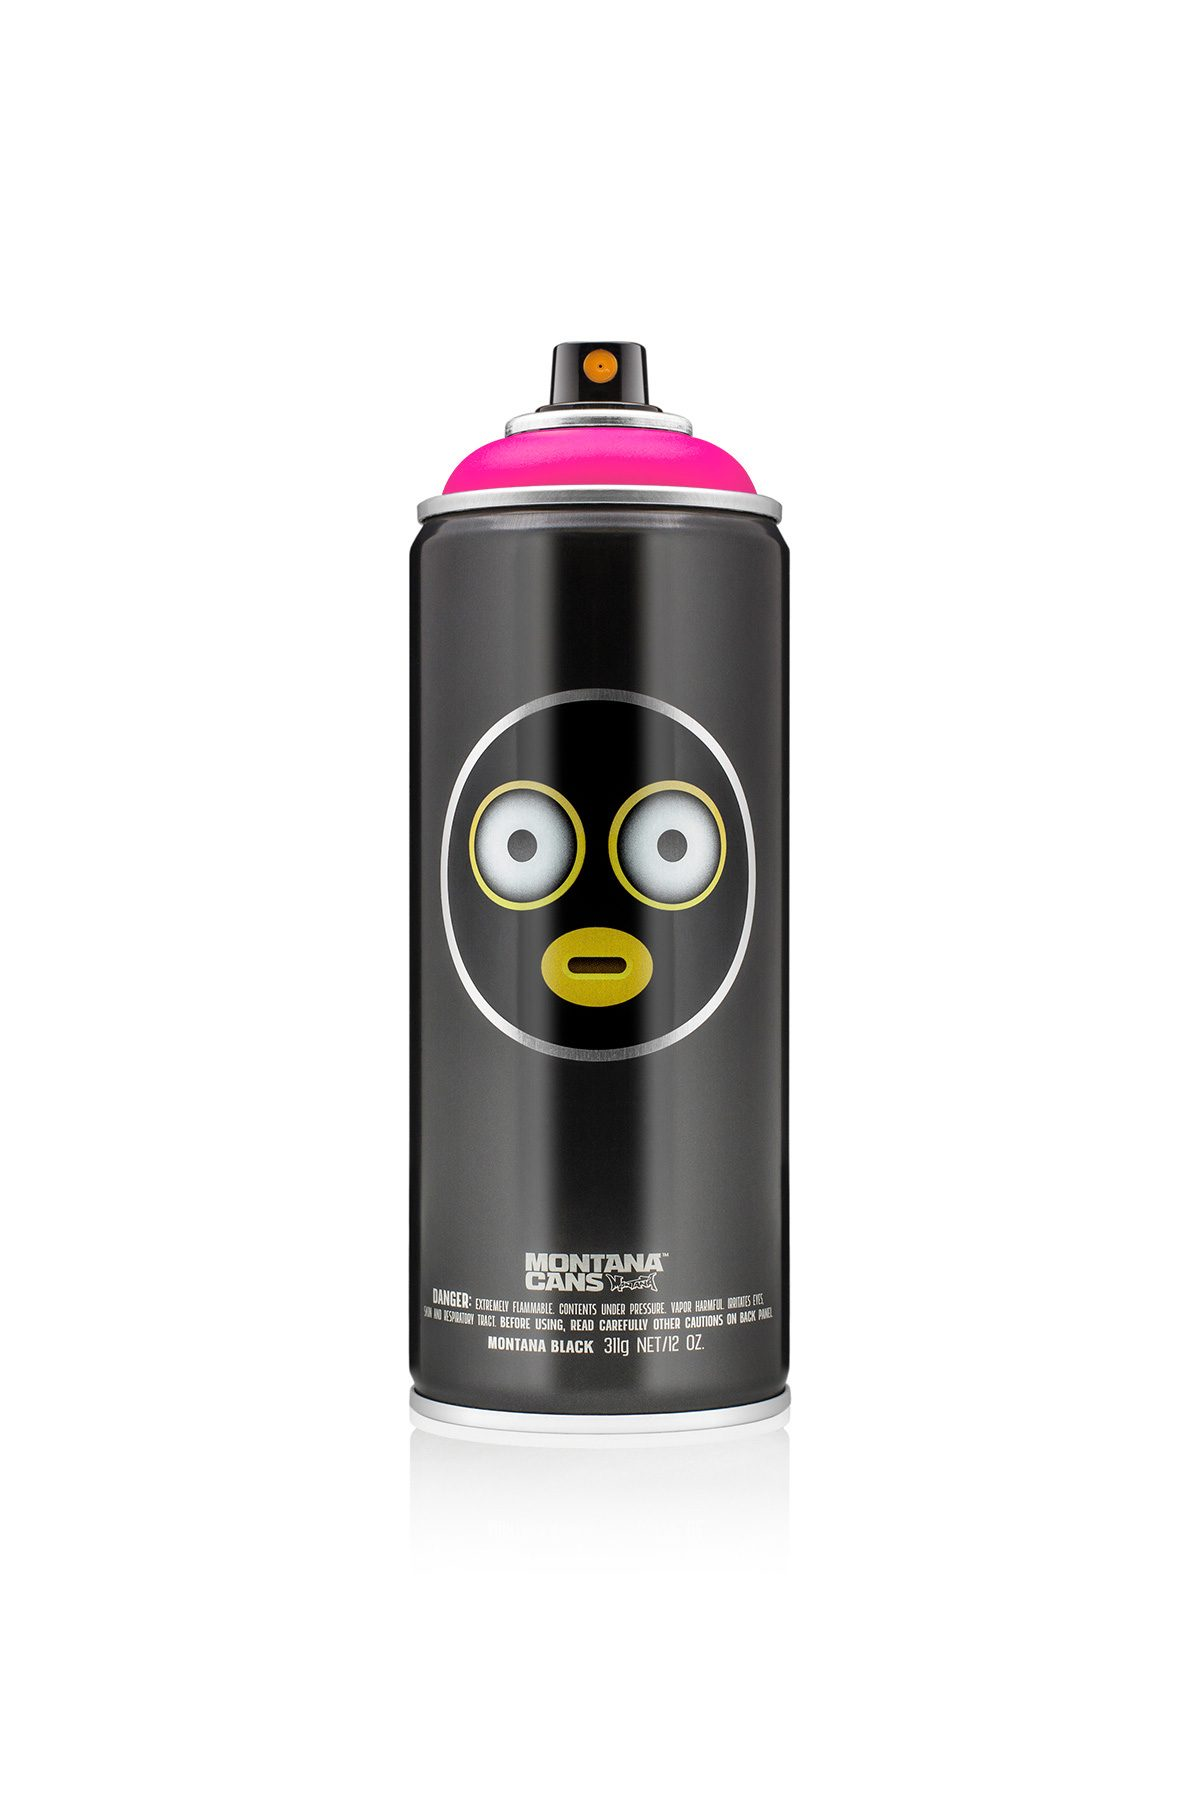 Montana BLACK #EMOJIVANDALS - Freak - Limited Edition 400ml